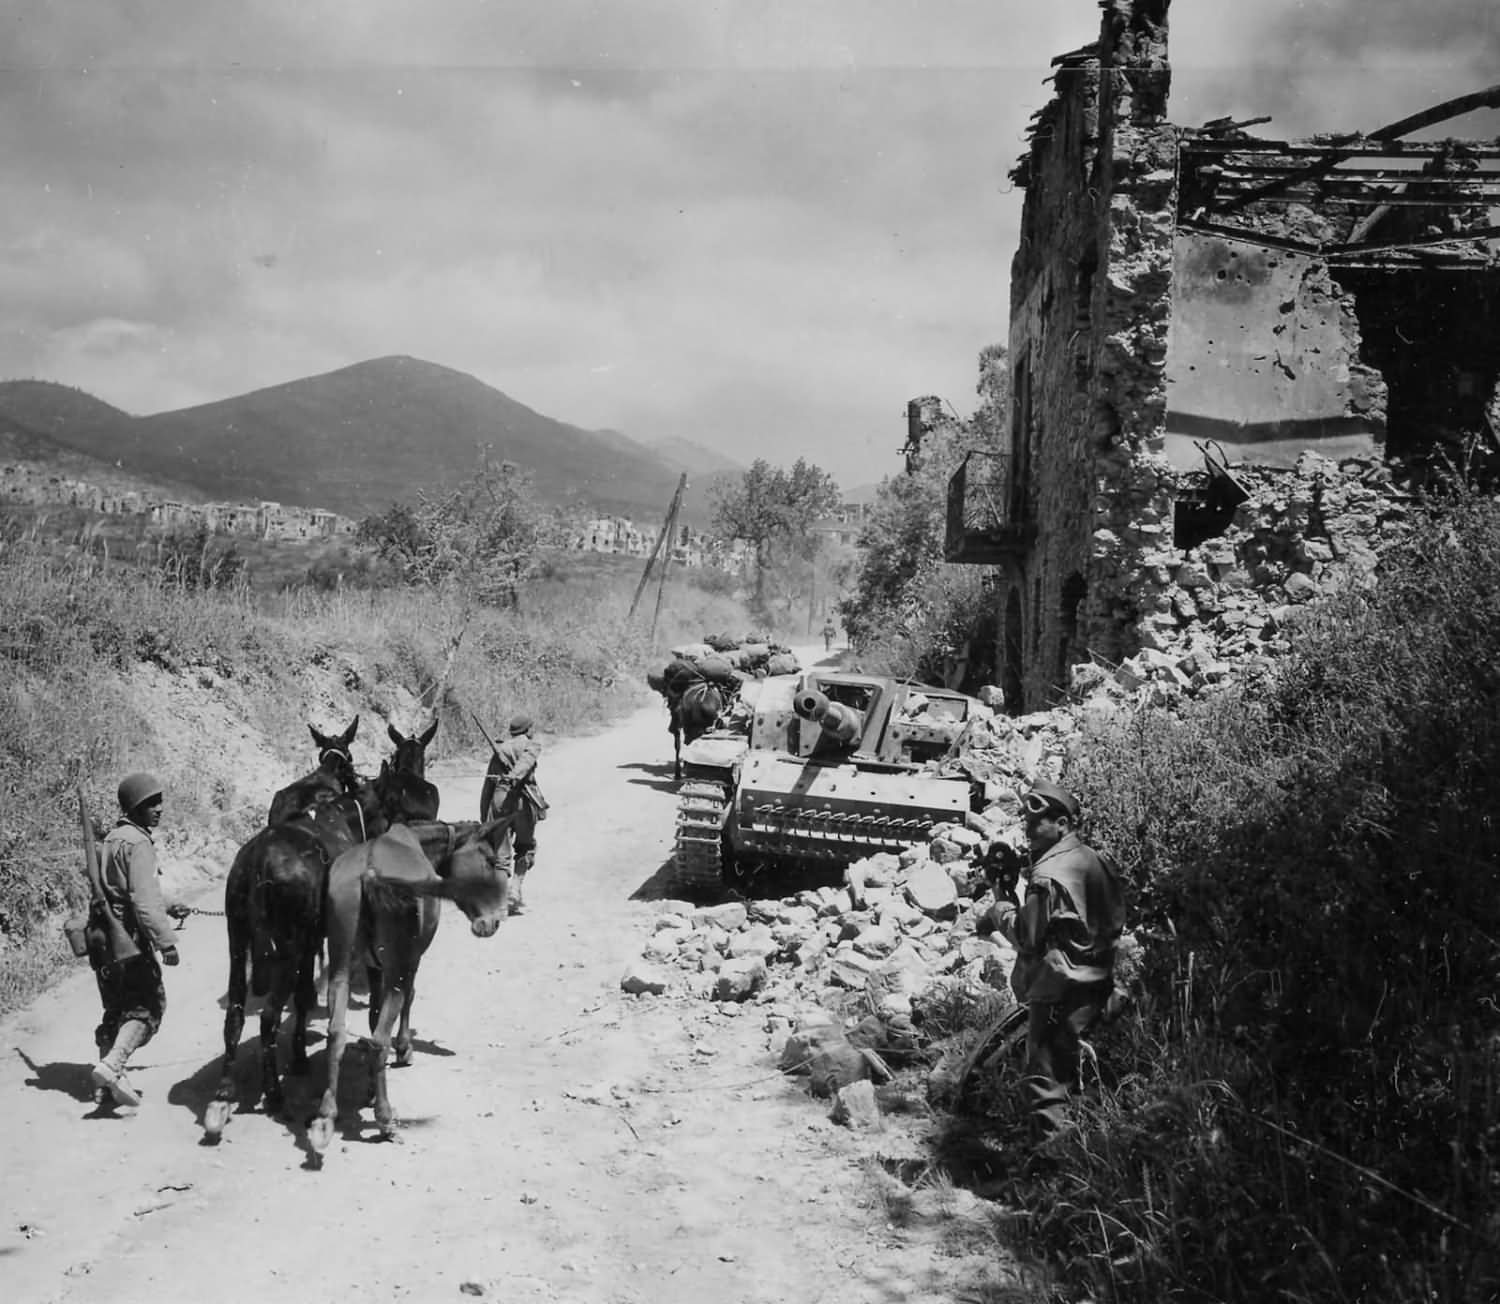 5th Army Troops and Mules Pass German StuG 40 Assault Gun Castelforte Italy 1944